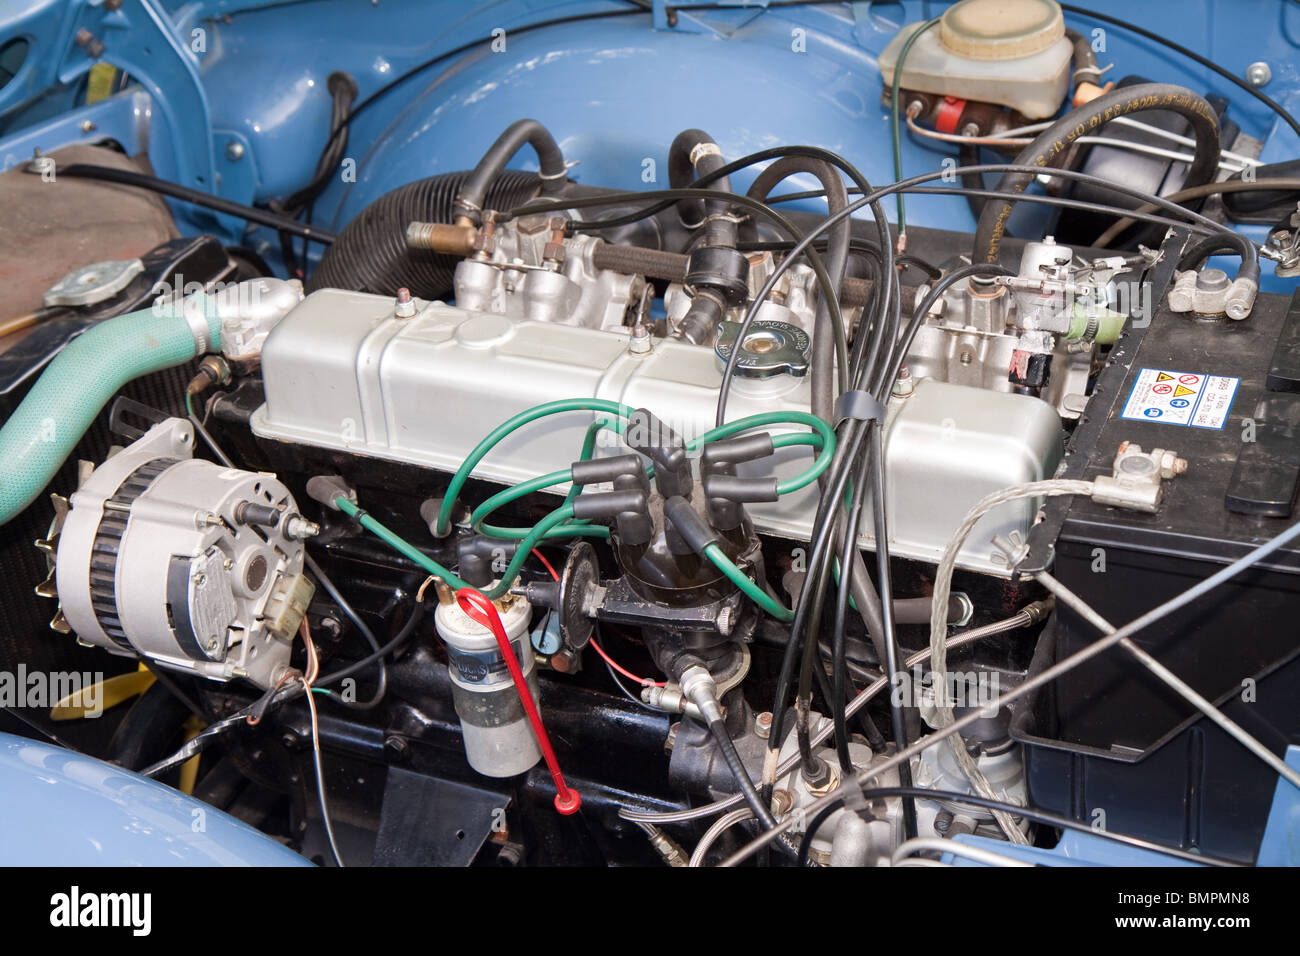 Triumph Tr6 Six Cylinder Fuel Injected Engine Stock Photo 30002708